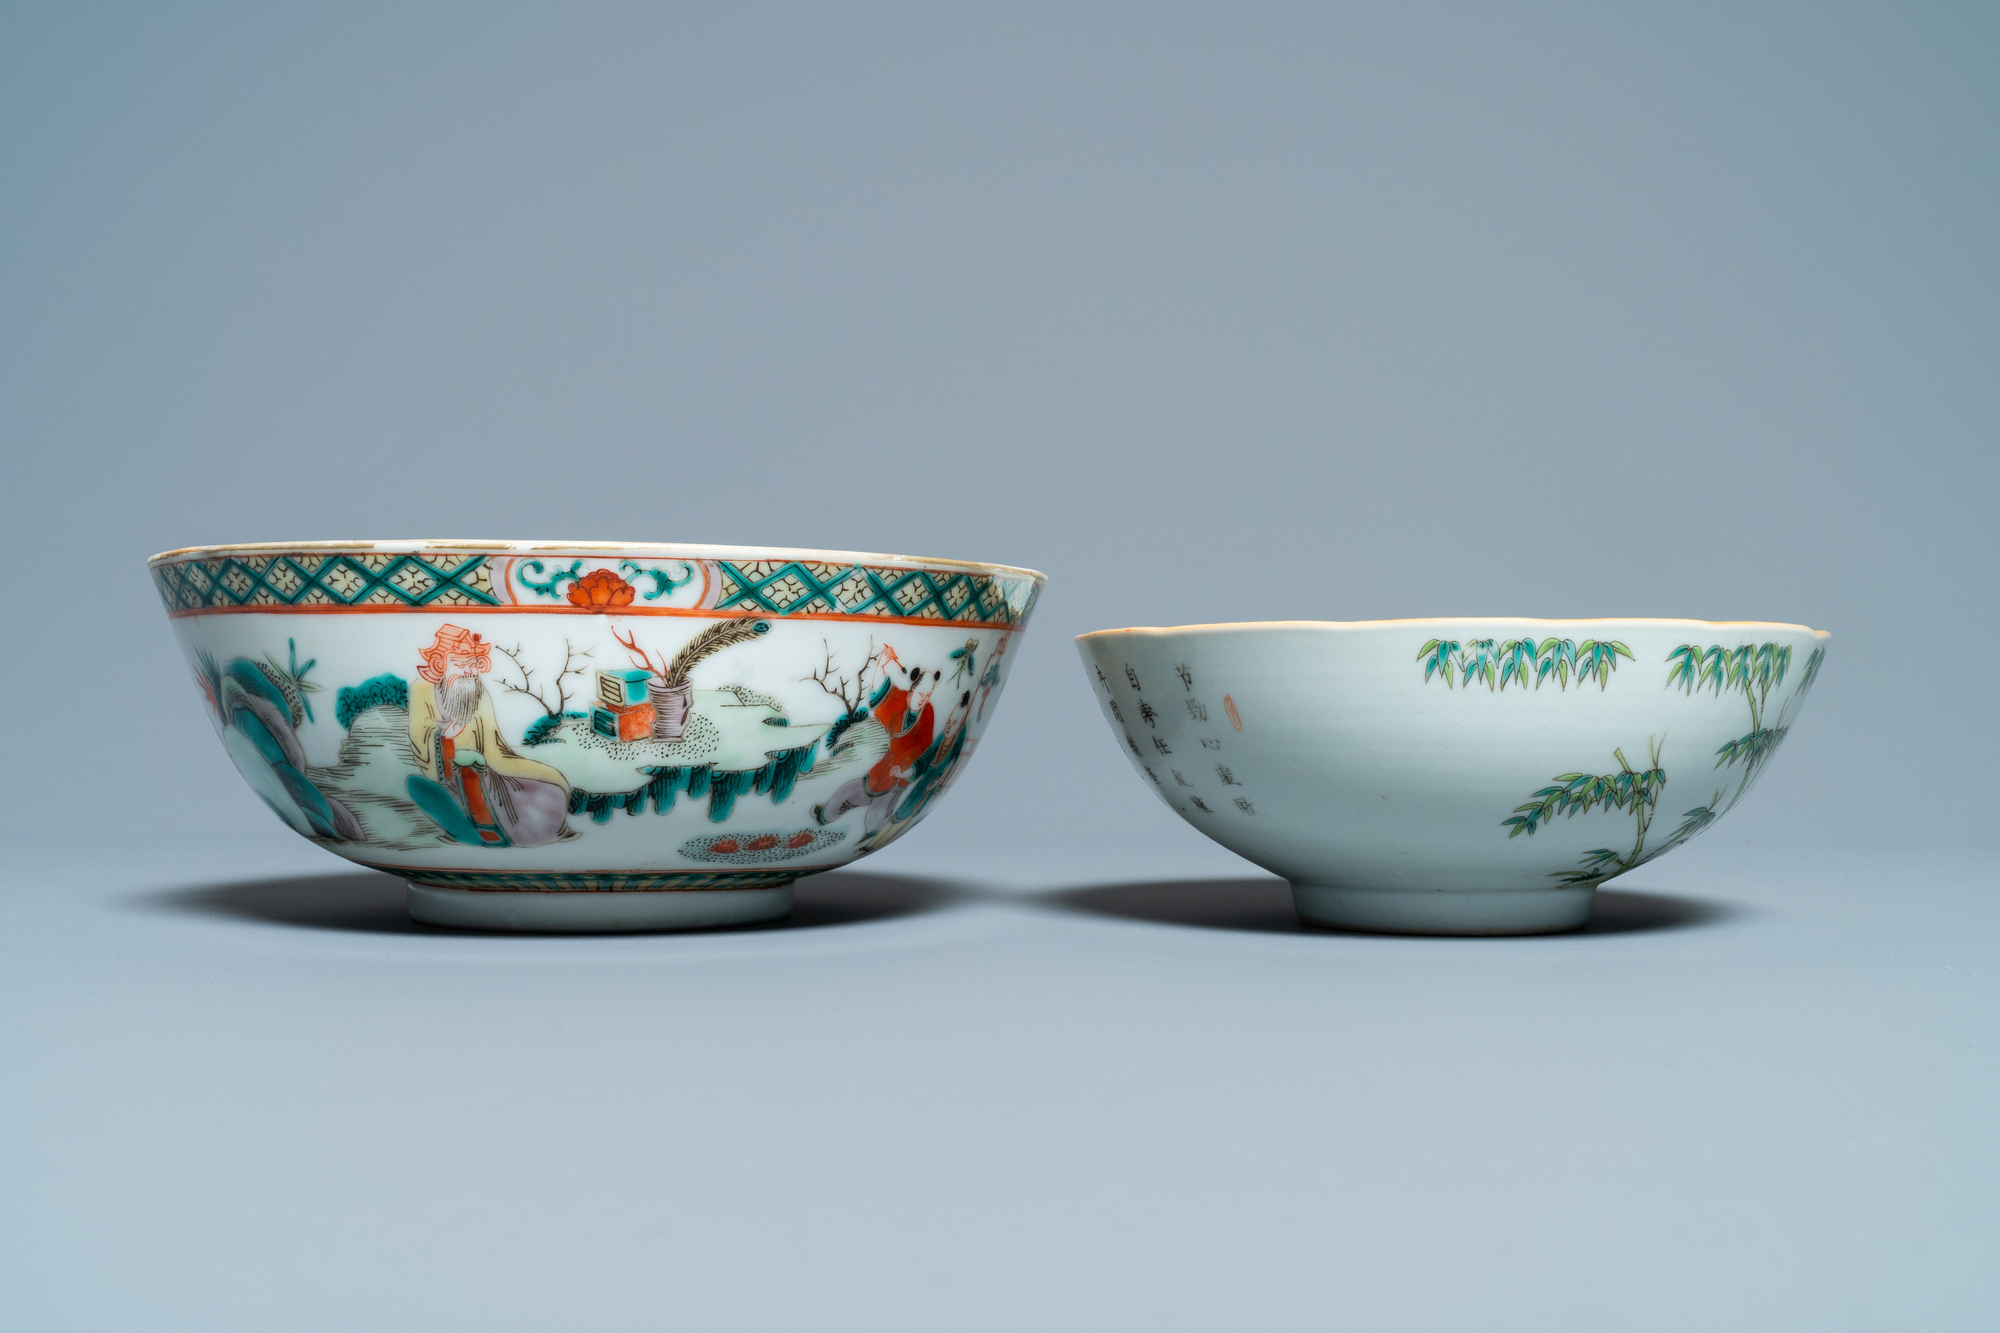 A Chinese blue and white jardiniere and two famille verte bowls, 19/20th C. - Image 11 of 13